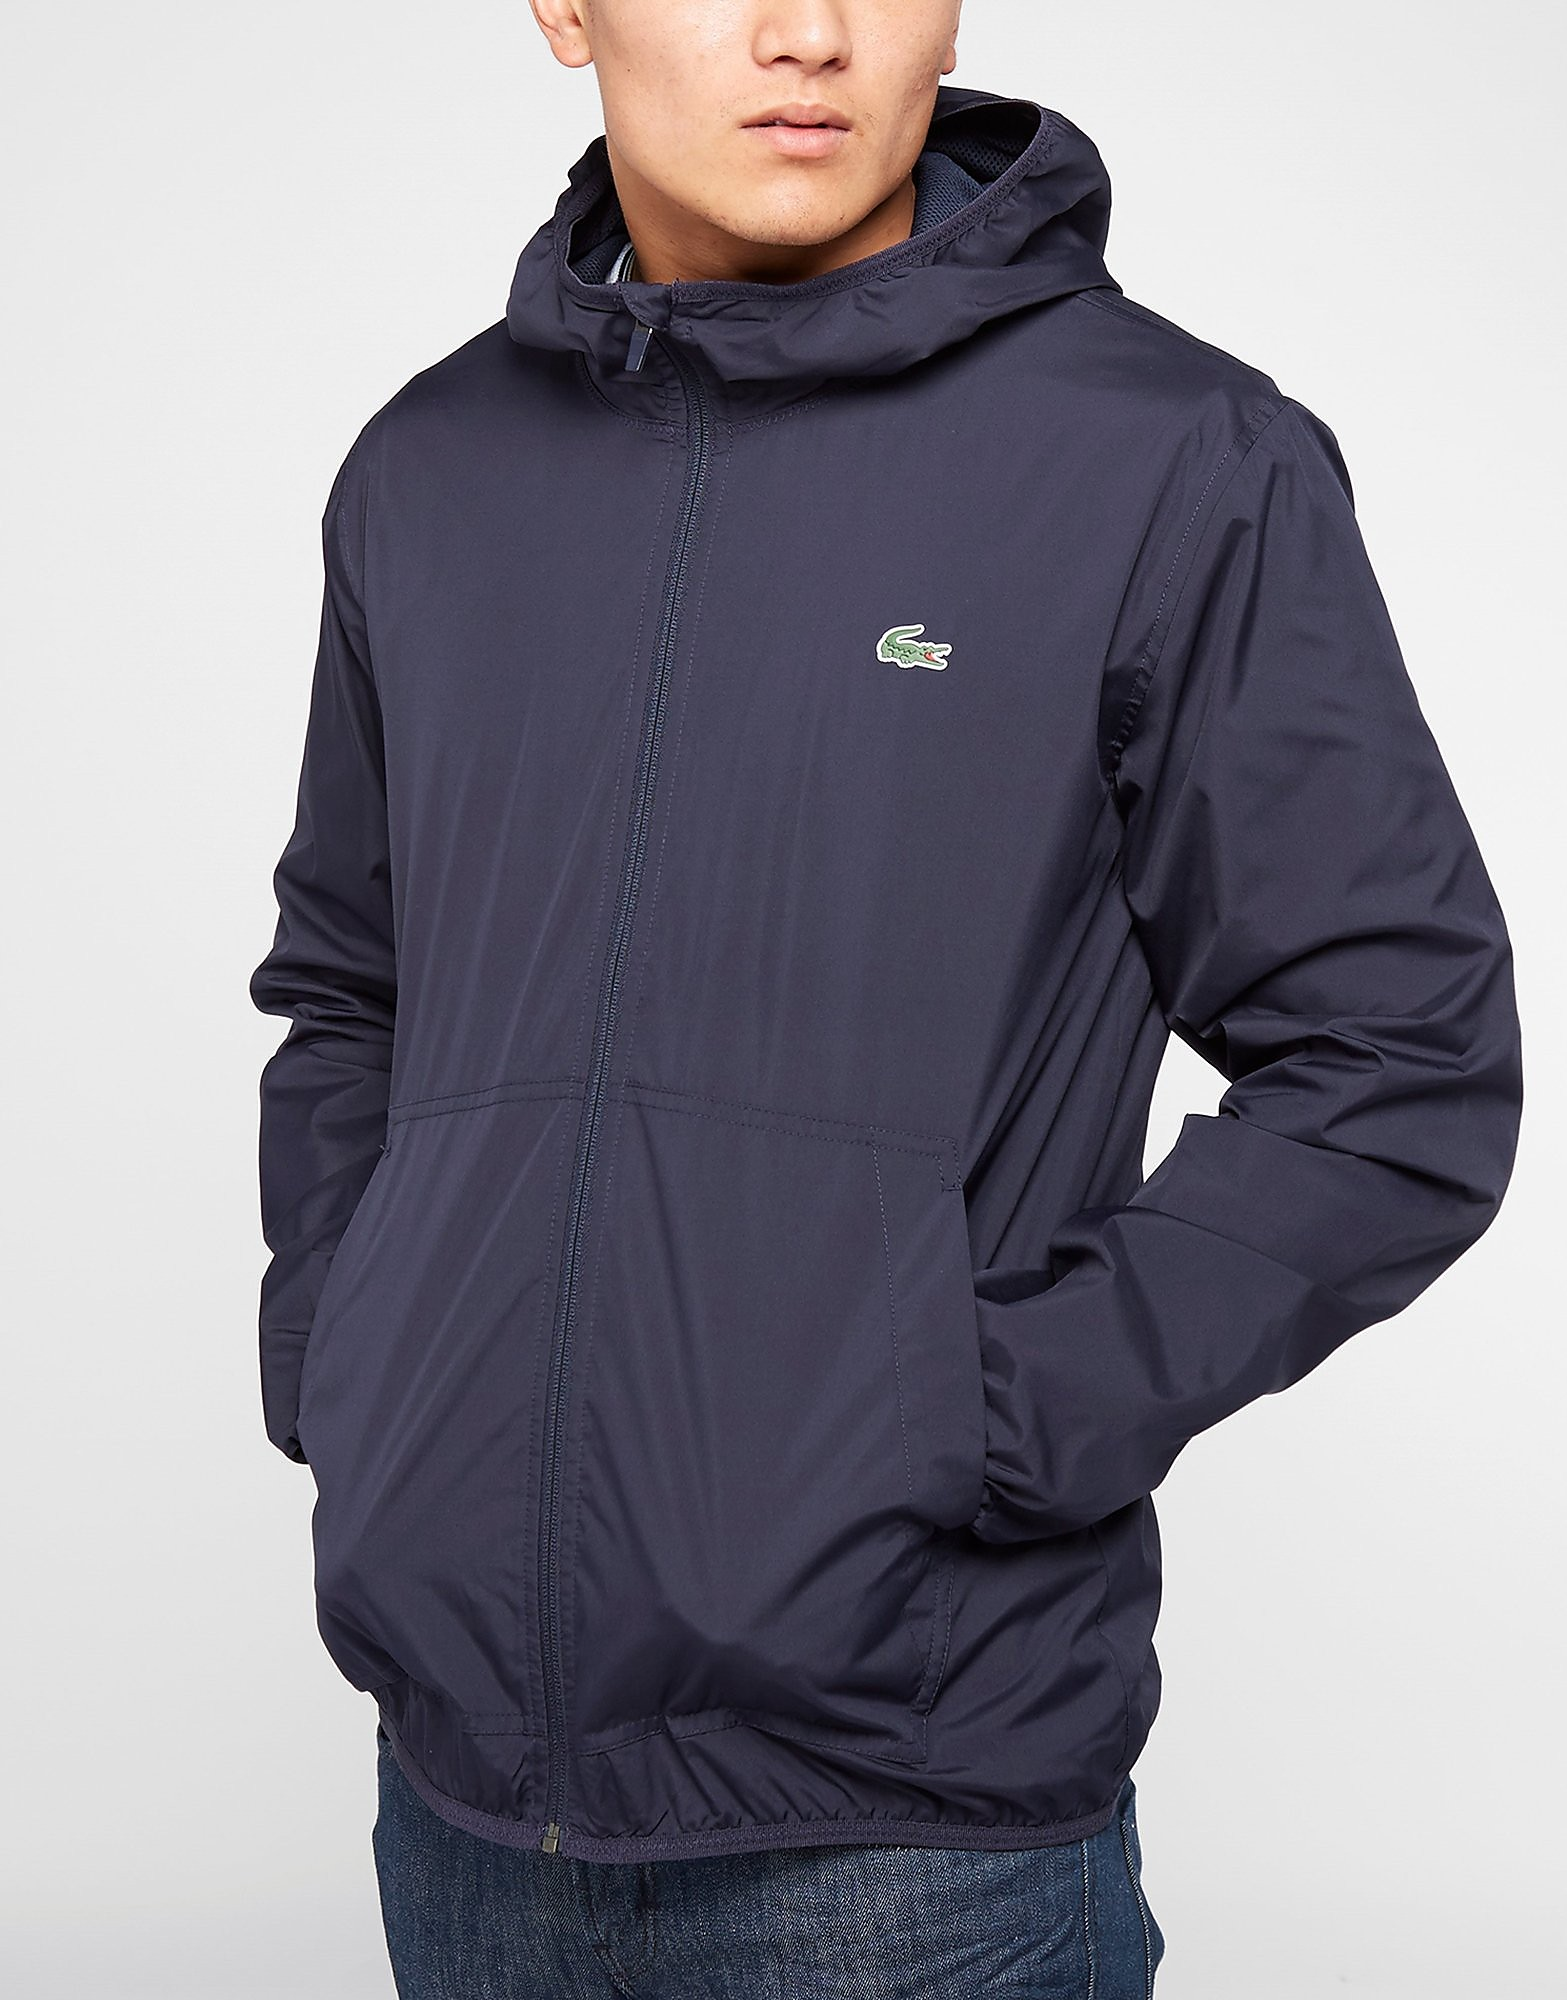 Cheap Full Coverage >> Lacoste jacket | Shop for cheap products and Save online